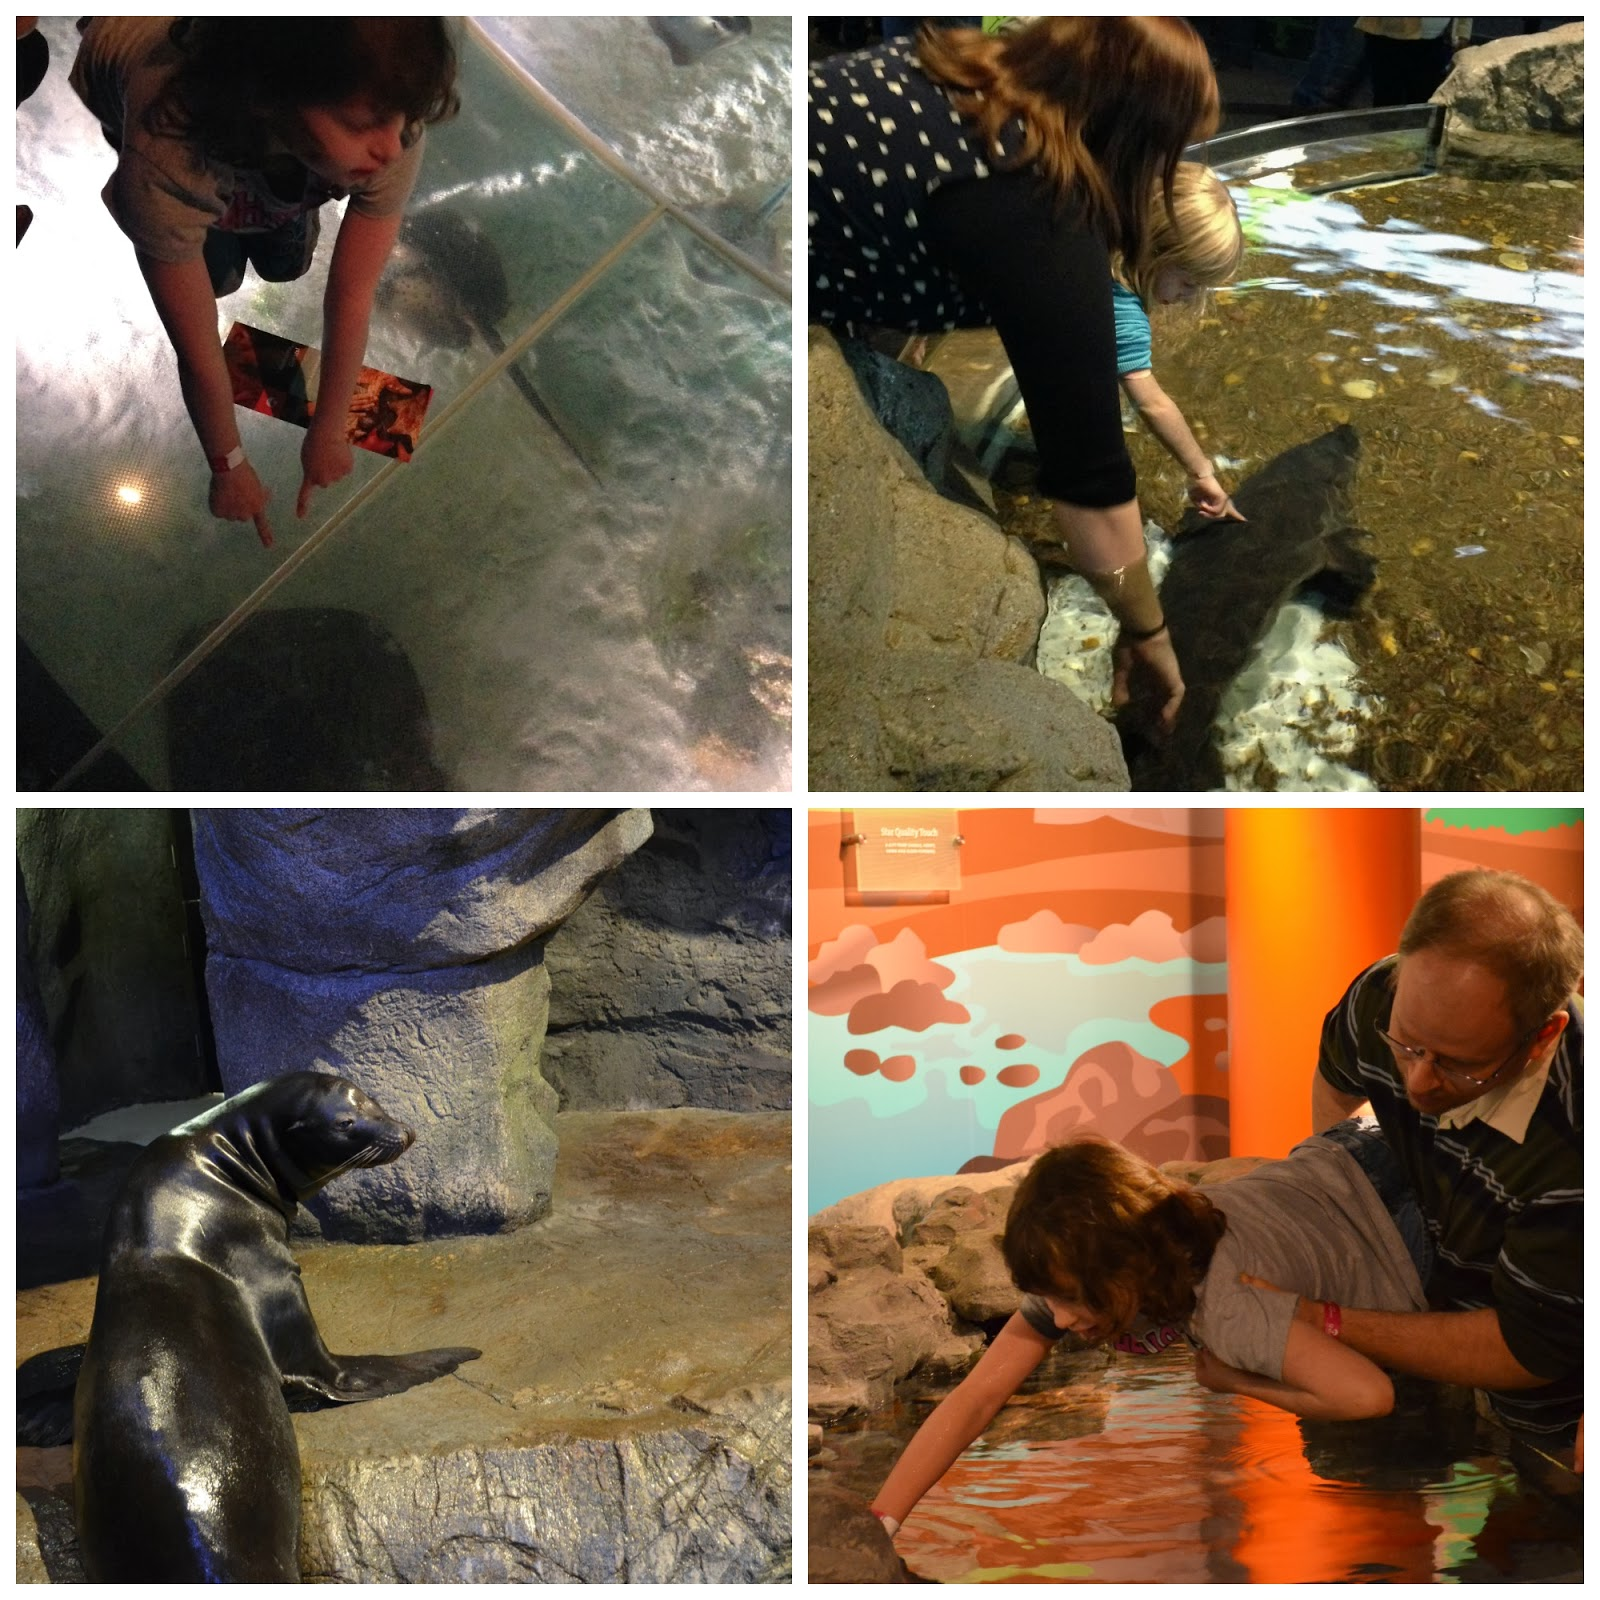 Hands-On Exhibits at Shedd Aquarium in Chicago